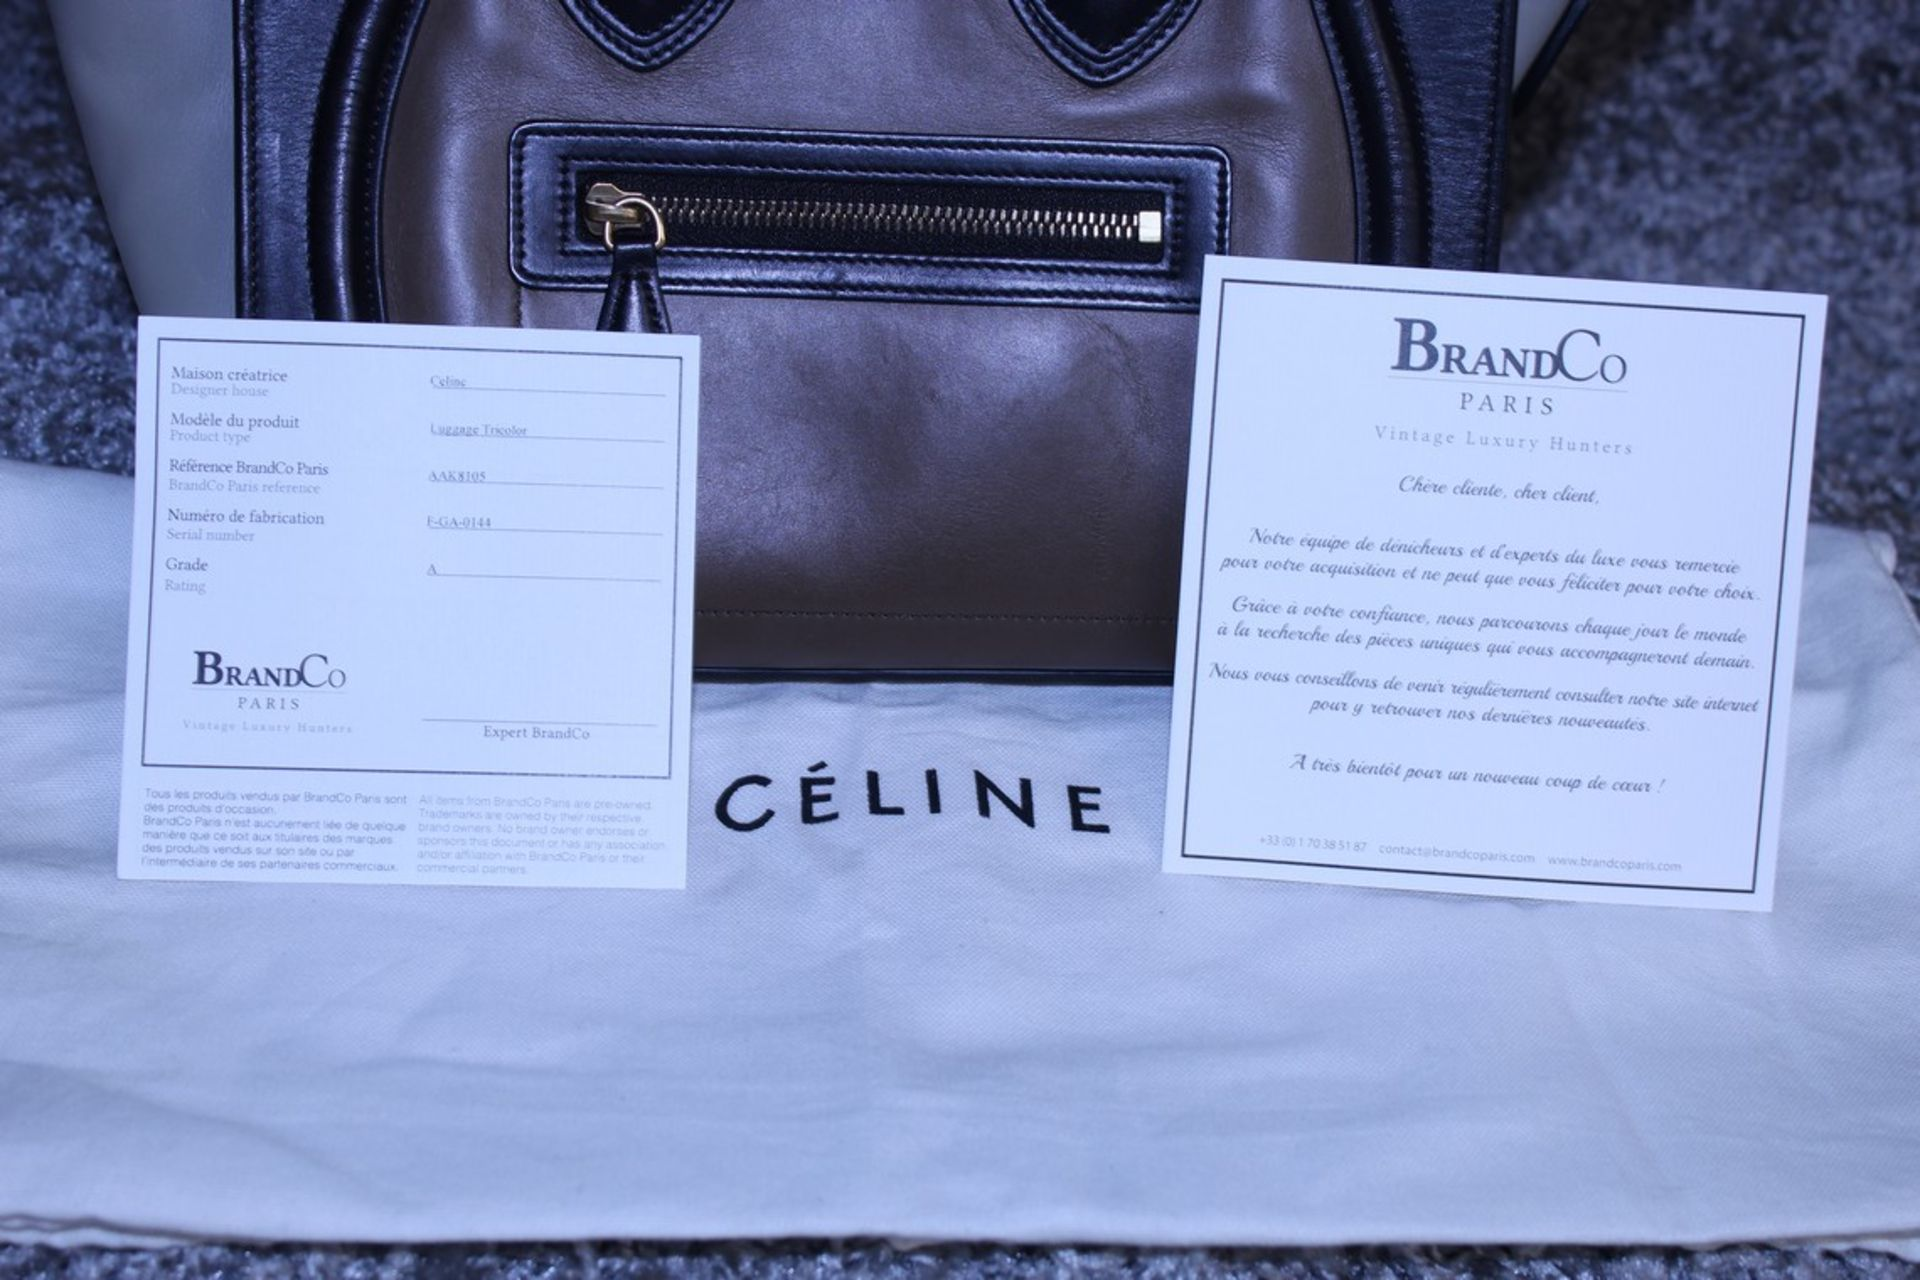 RRP £1,500 Celine Luggage Tricol Handbag, Céline 'Mini Luggage'. Open Swith A Zipper On Top And Is - Image 5 of 5